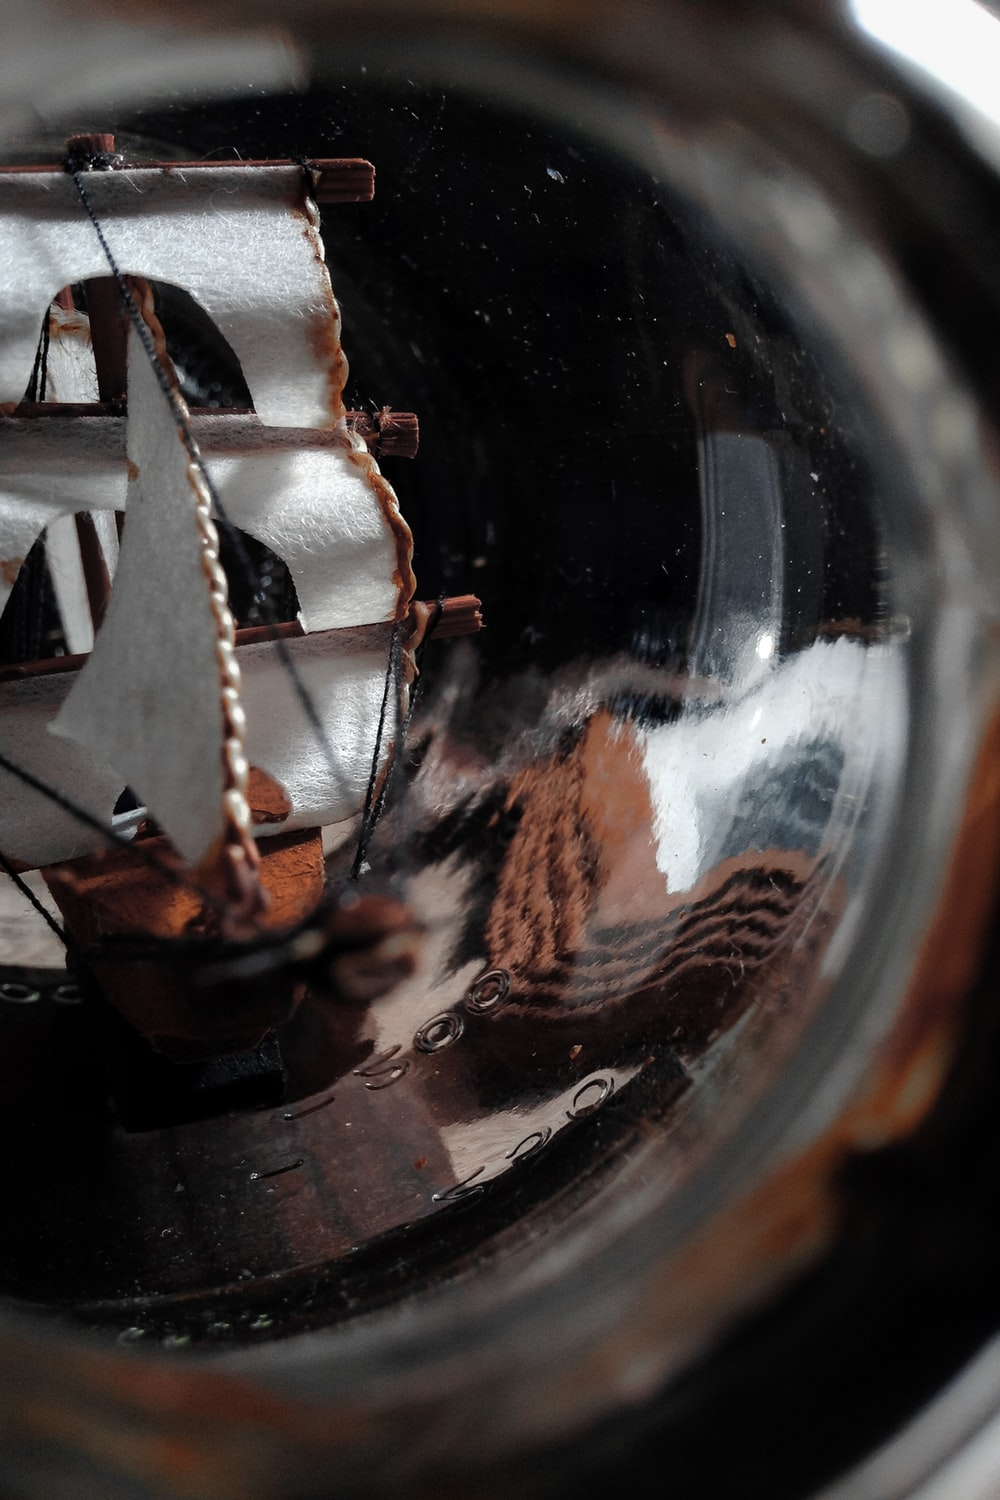 miniature ship in close-up photography